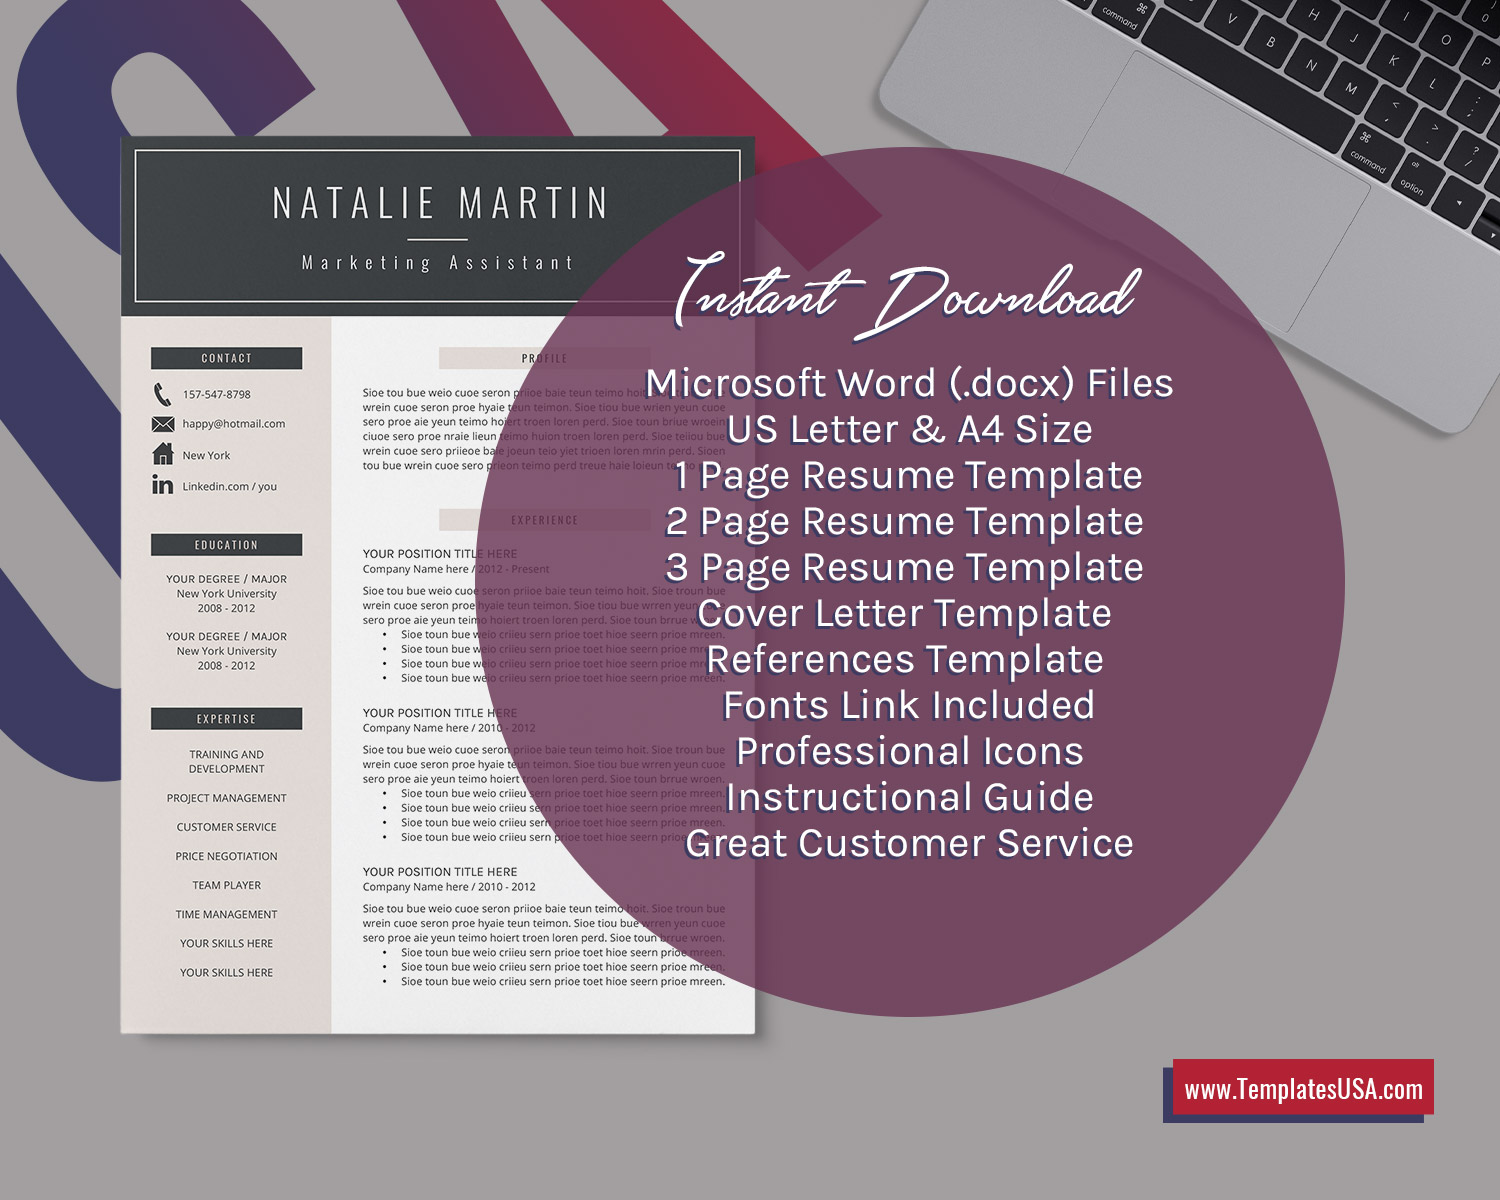 Ms Word Resume Cover Letter Template from www.templatesusa.com